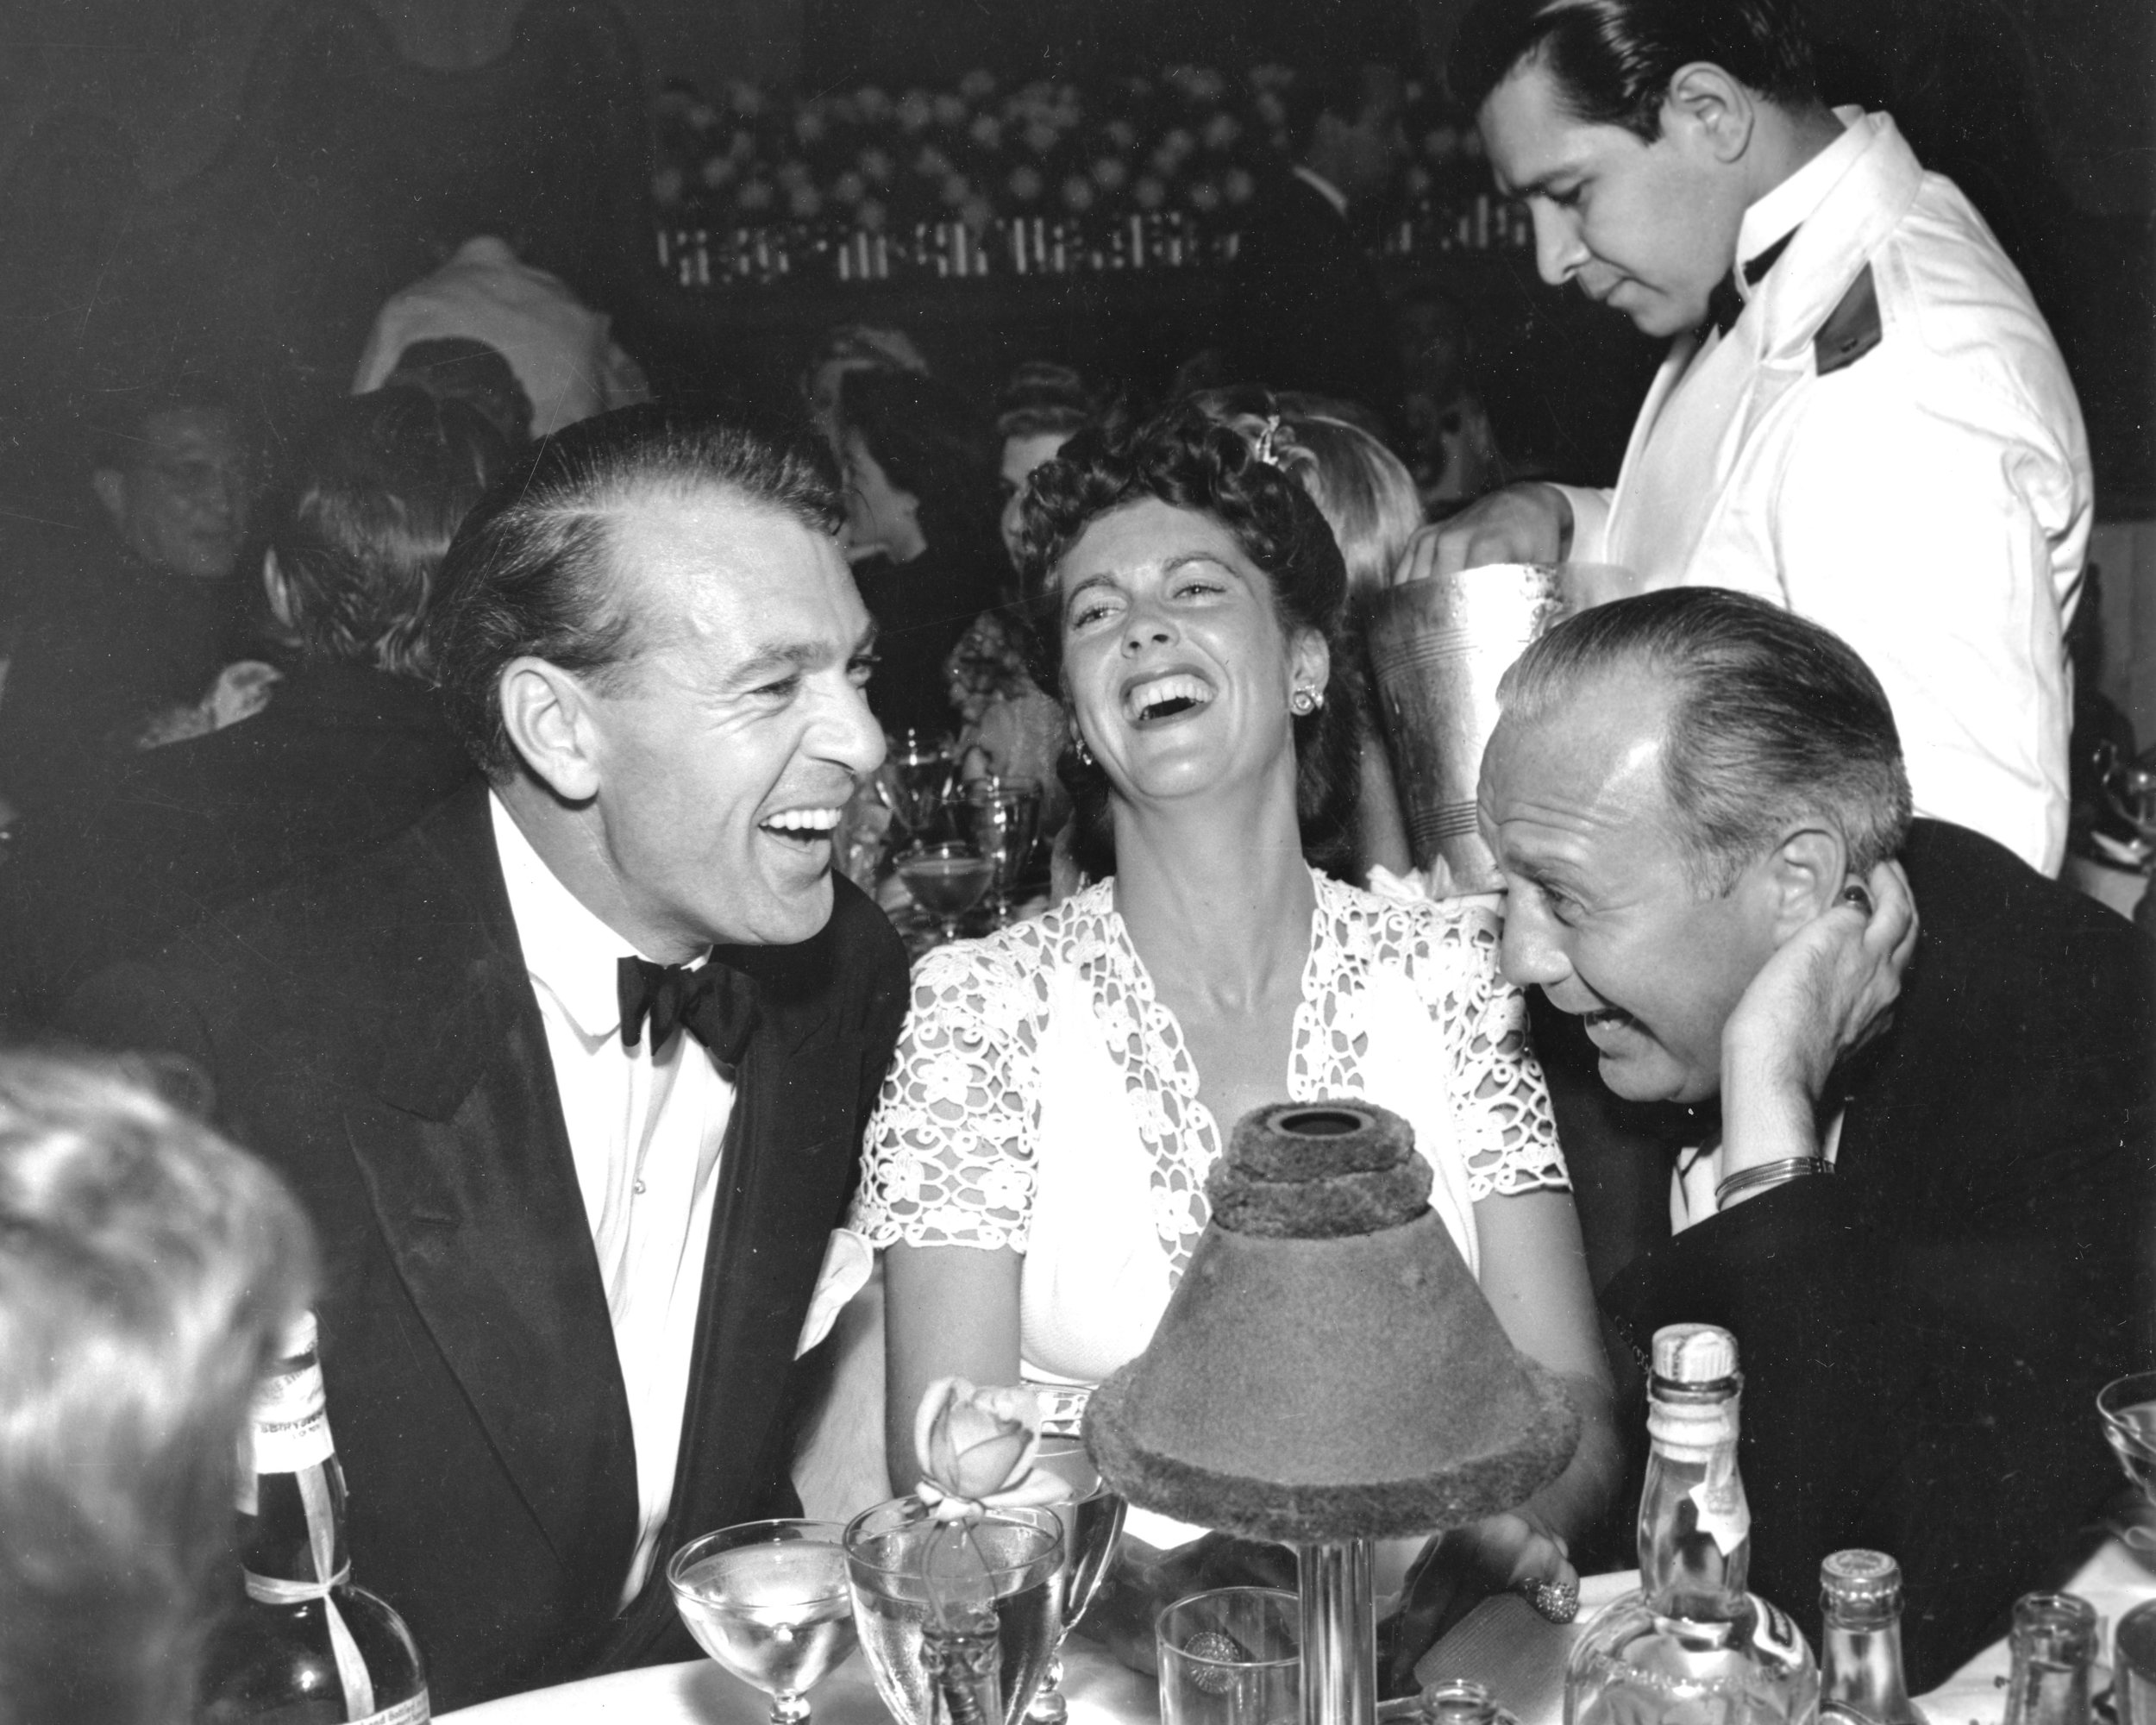 Gary and Victoria Cooper with Jack Benny